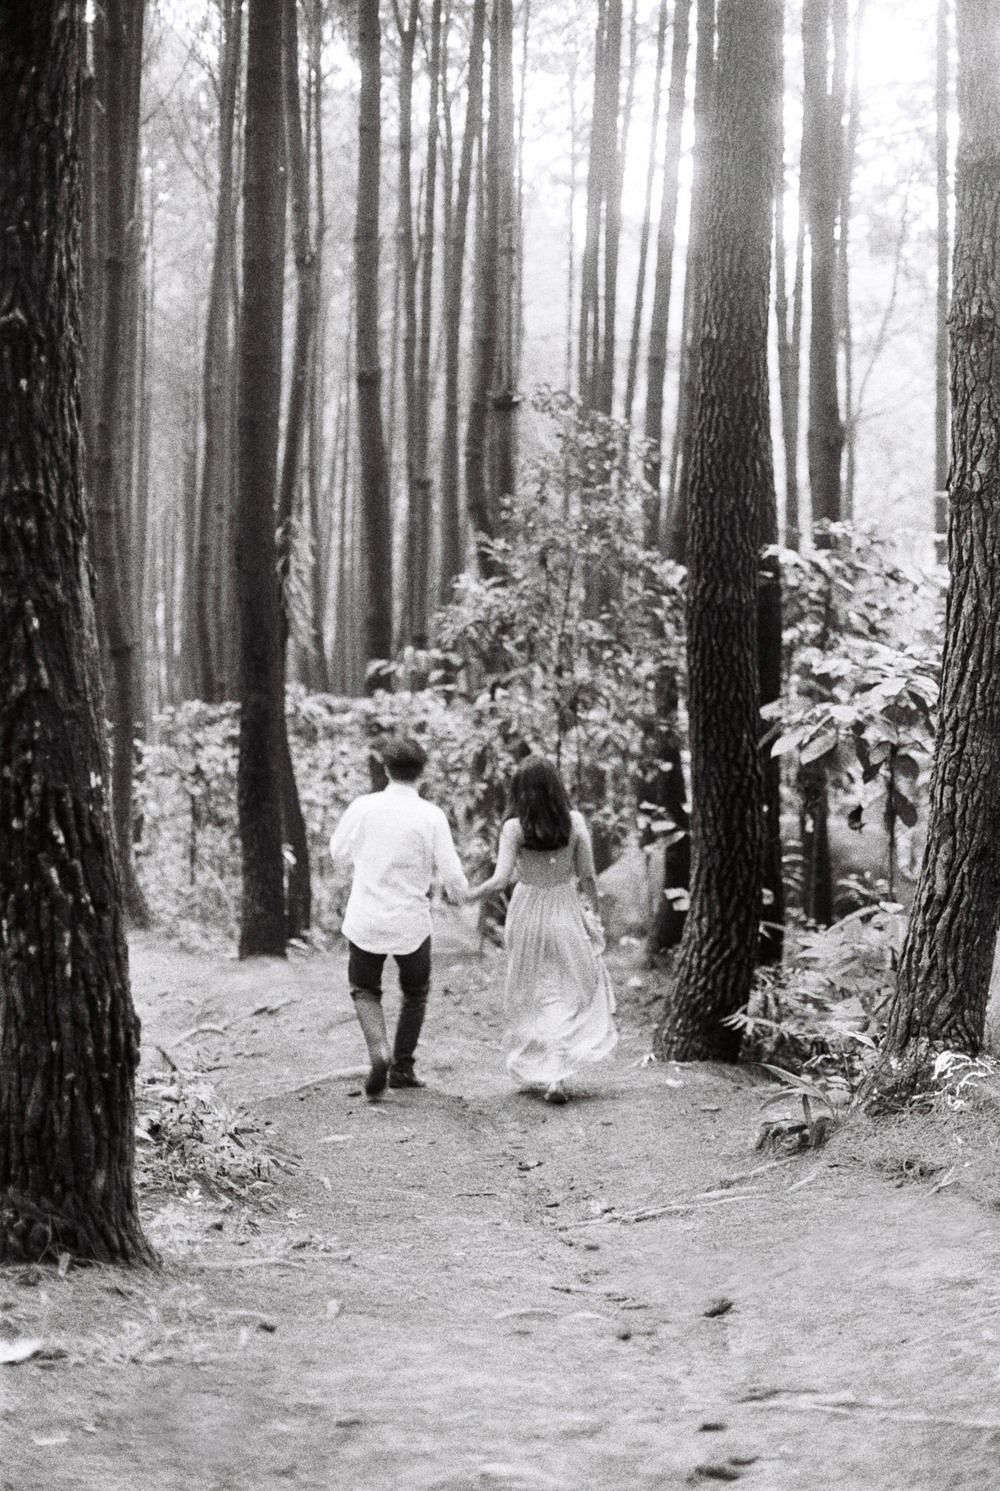 43-nature-outdoor-forest-prewedding-jakarta.jpg